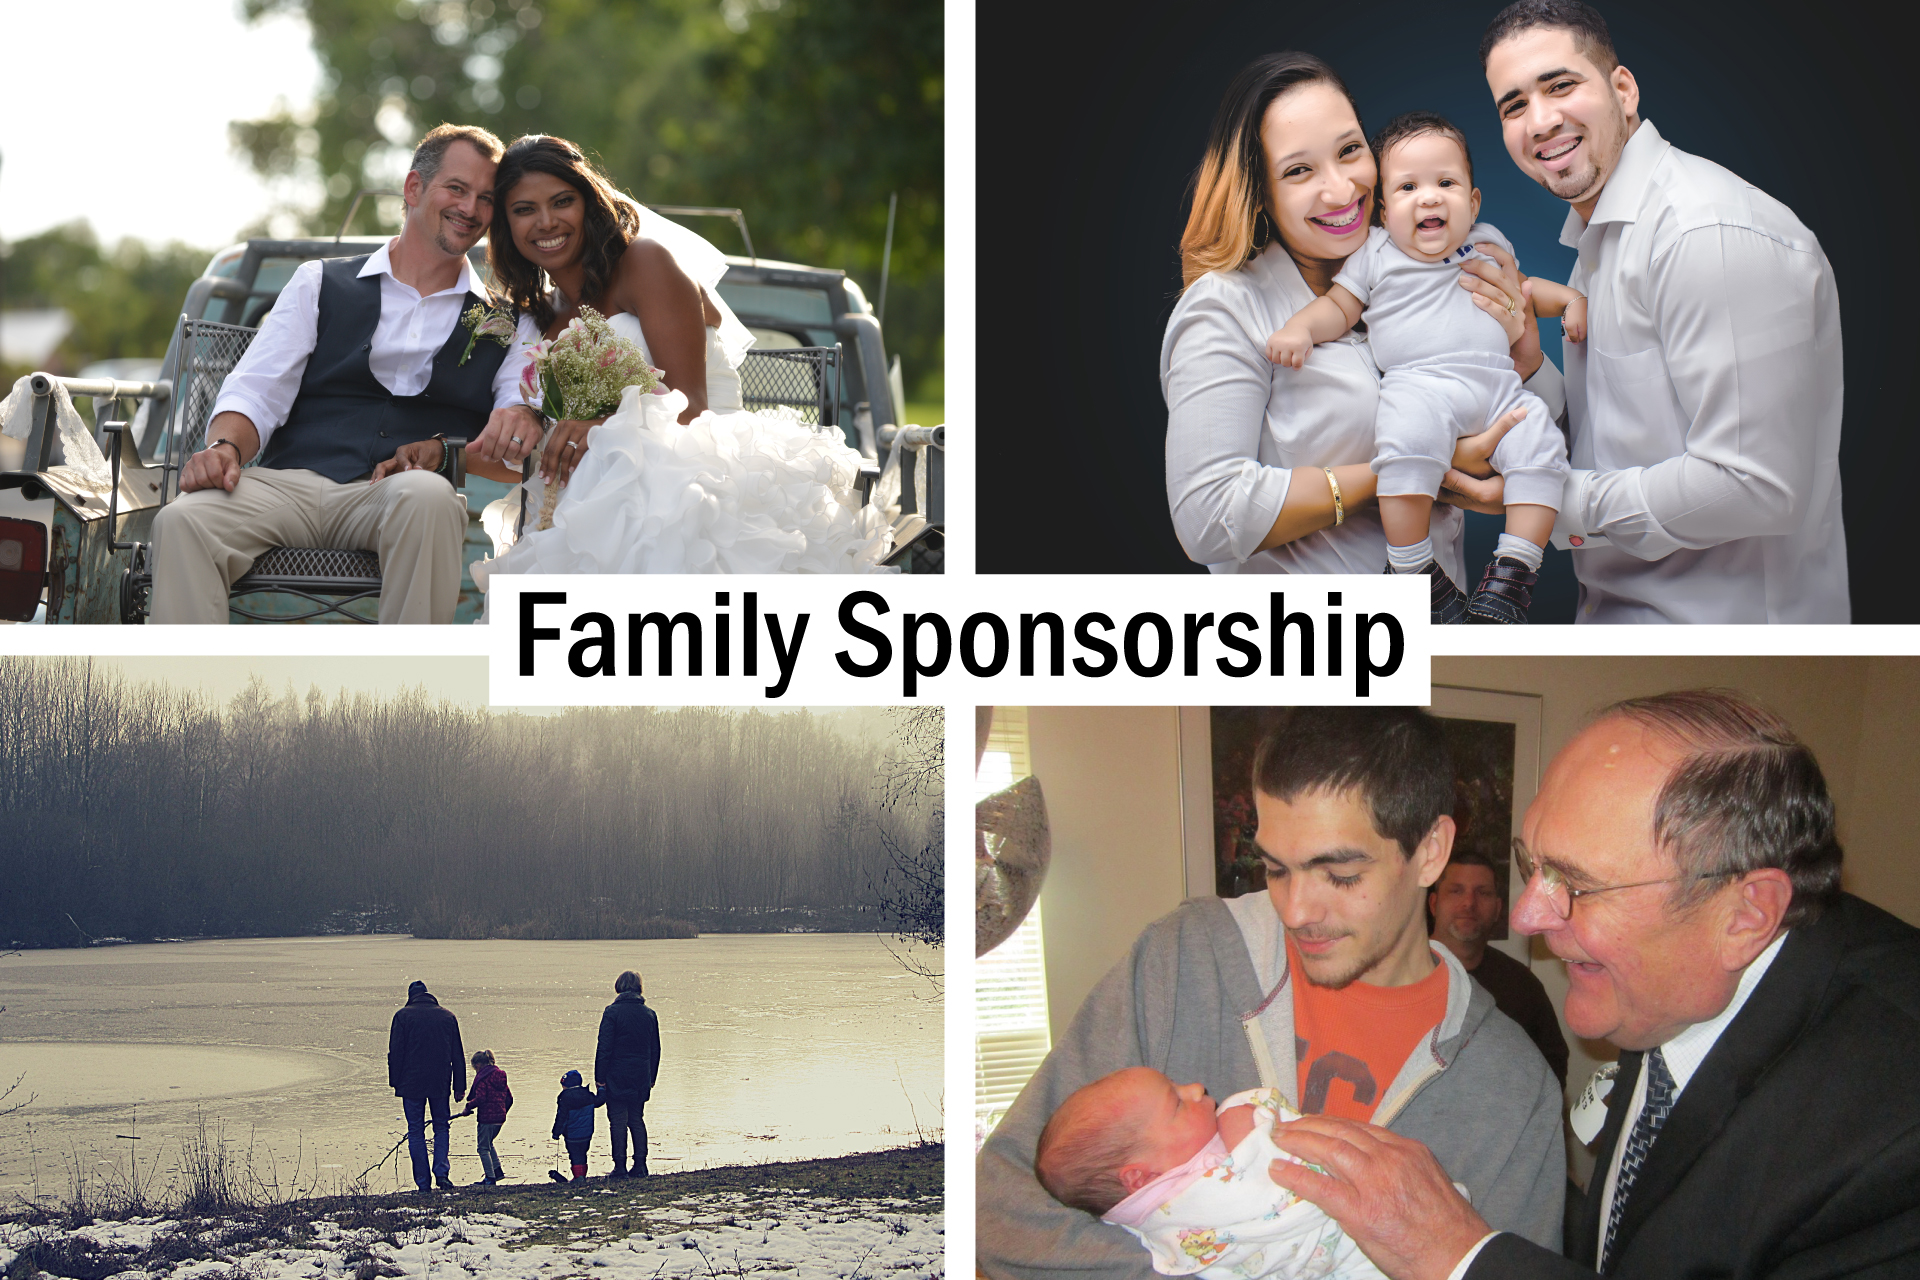 Vancouver Immigration Consultants helping family sponsorship